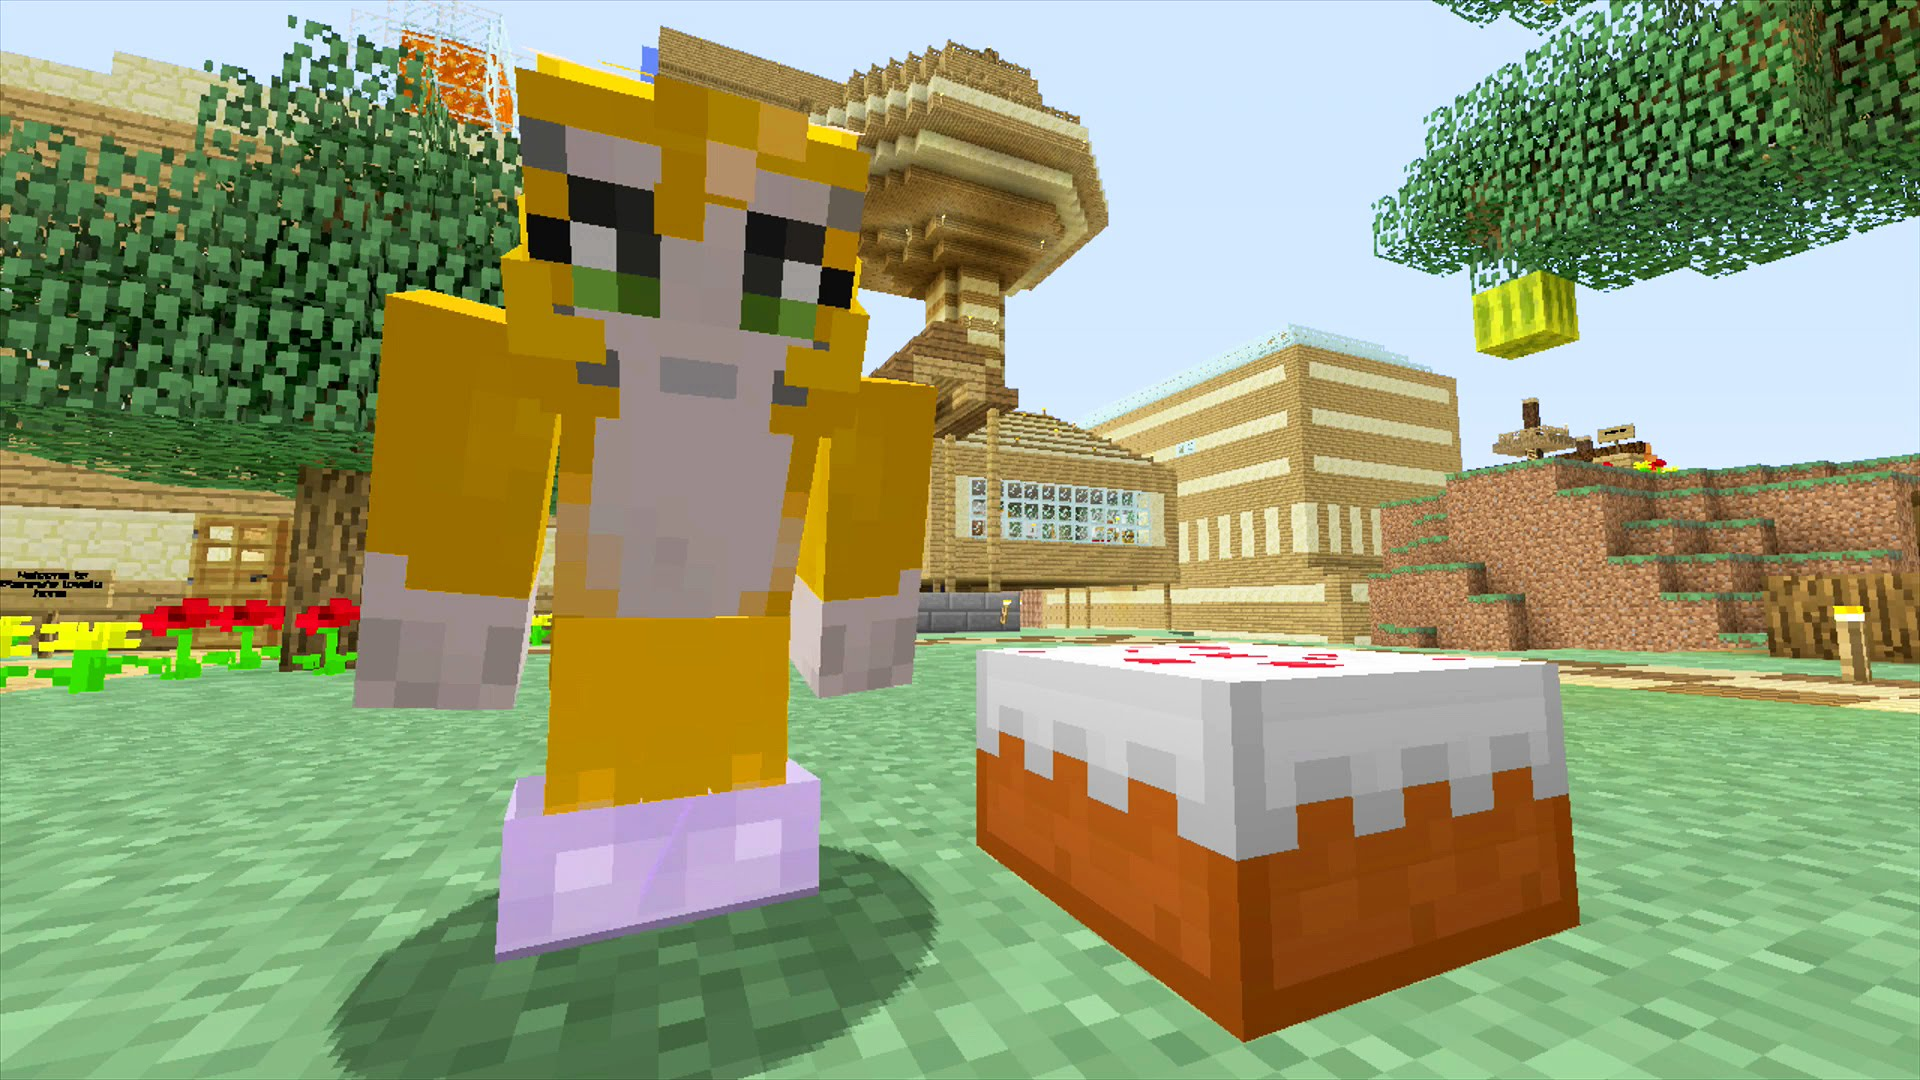 Animated Dual Screen Wallpaper Download Stampy Cat Wallpapers Gallery